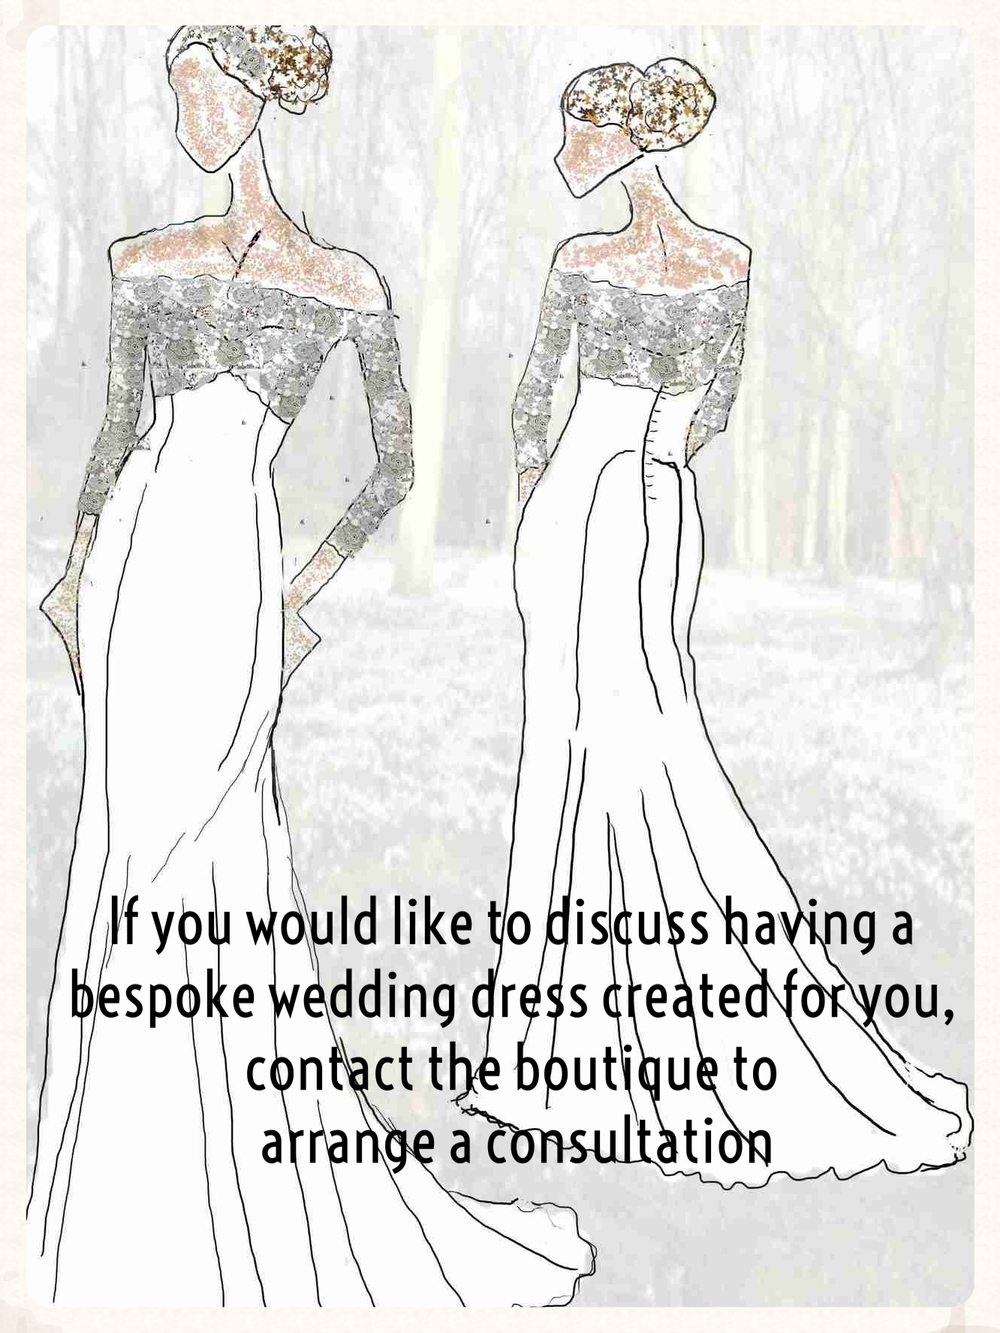 If you would like to discuss having a bespoke wedding dress created for you, contact the boutique to arrange a consultation